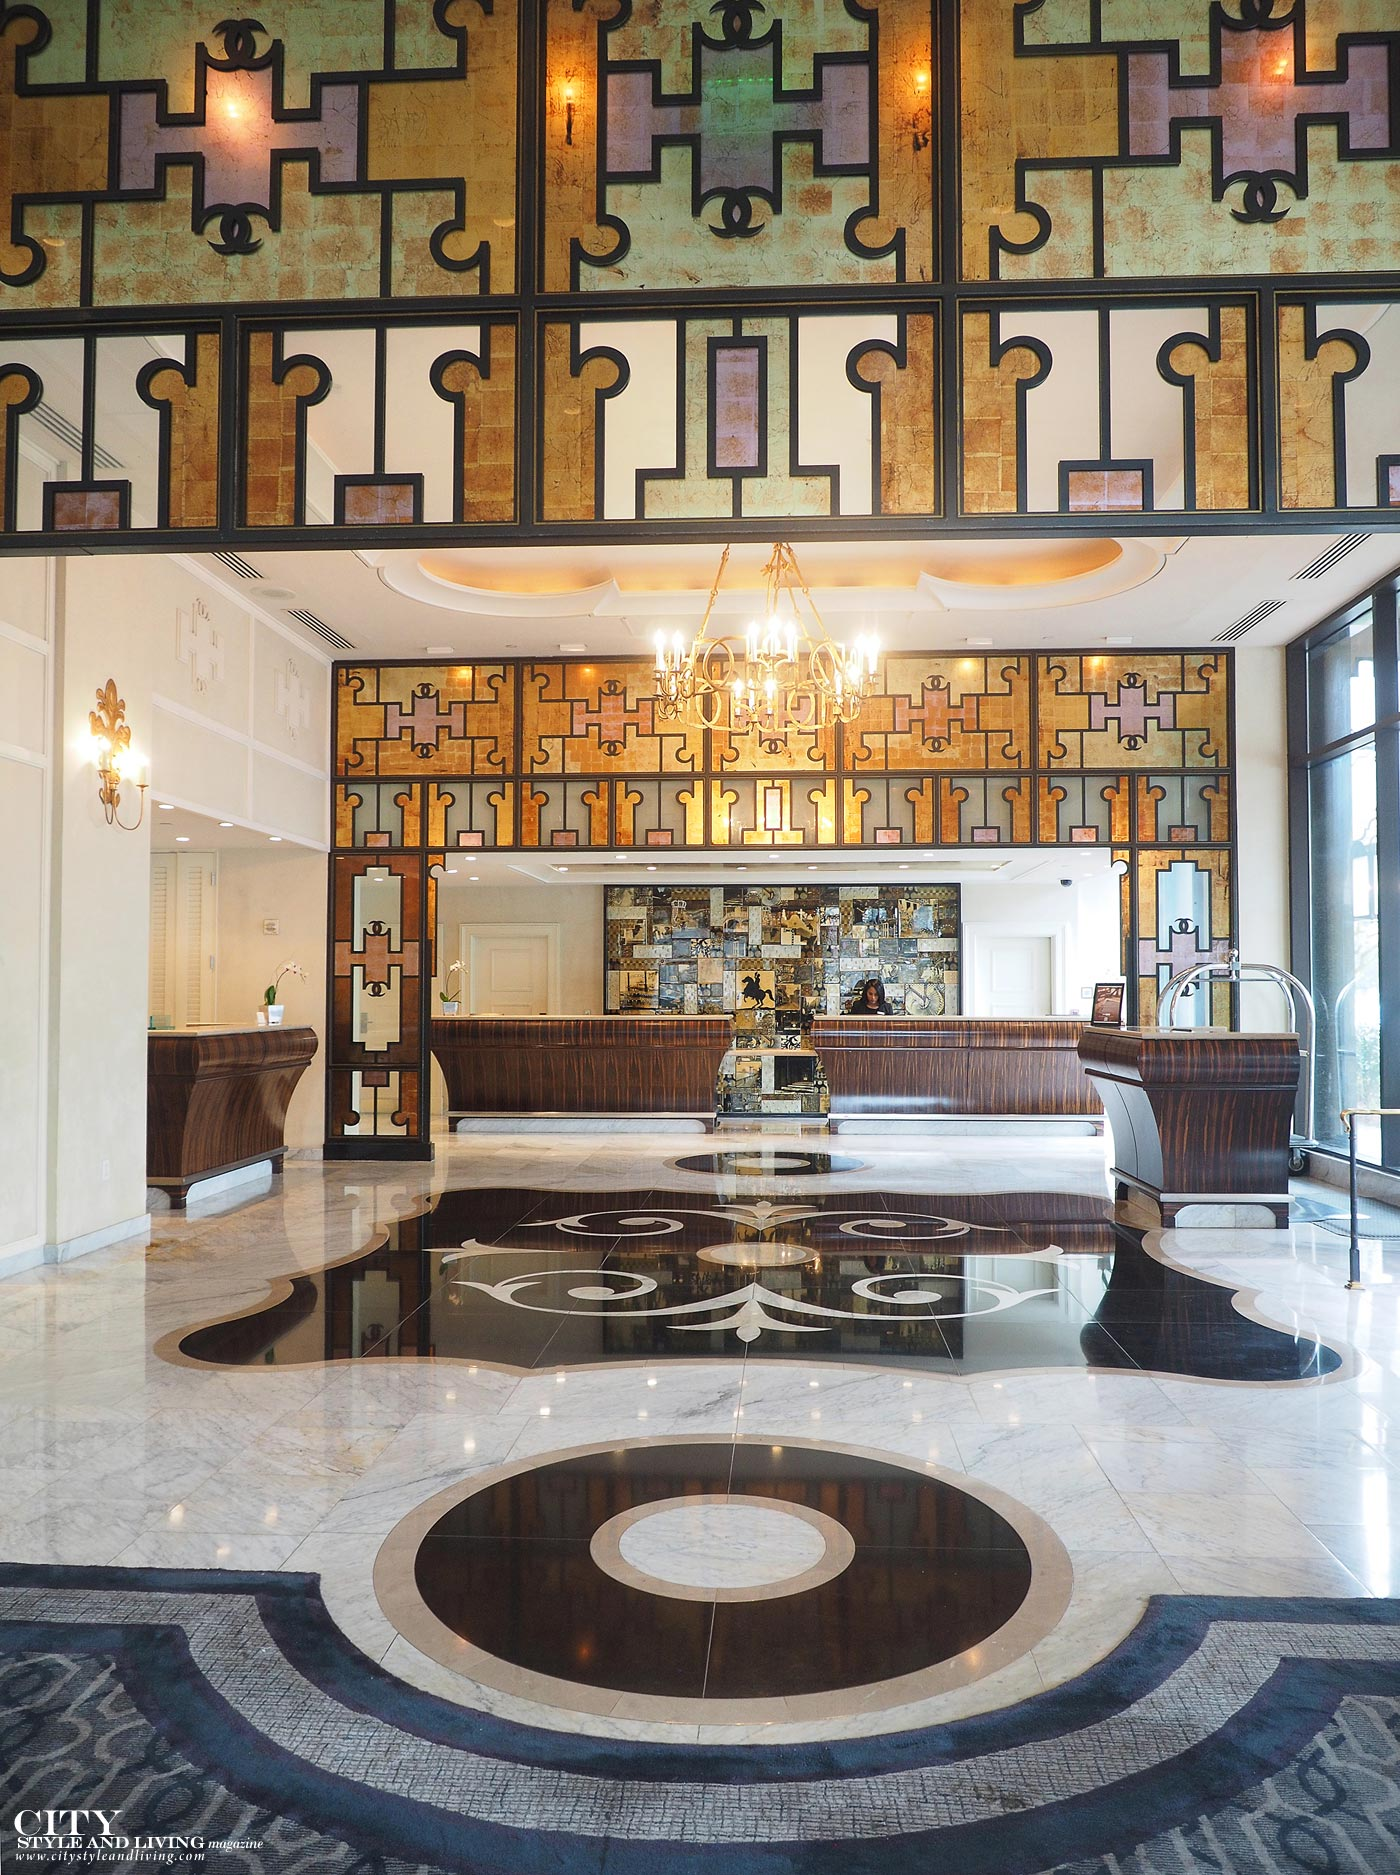 City Style and Living Magazine Loews New Orleans Lobby art deco